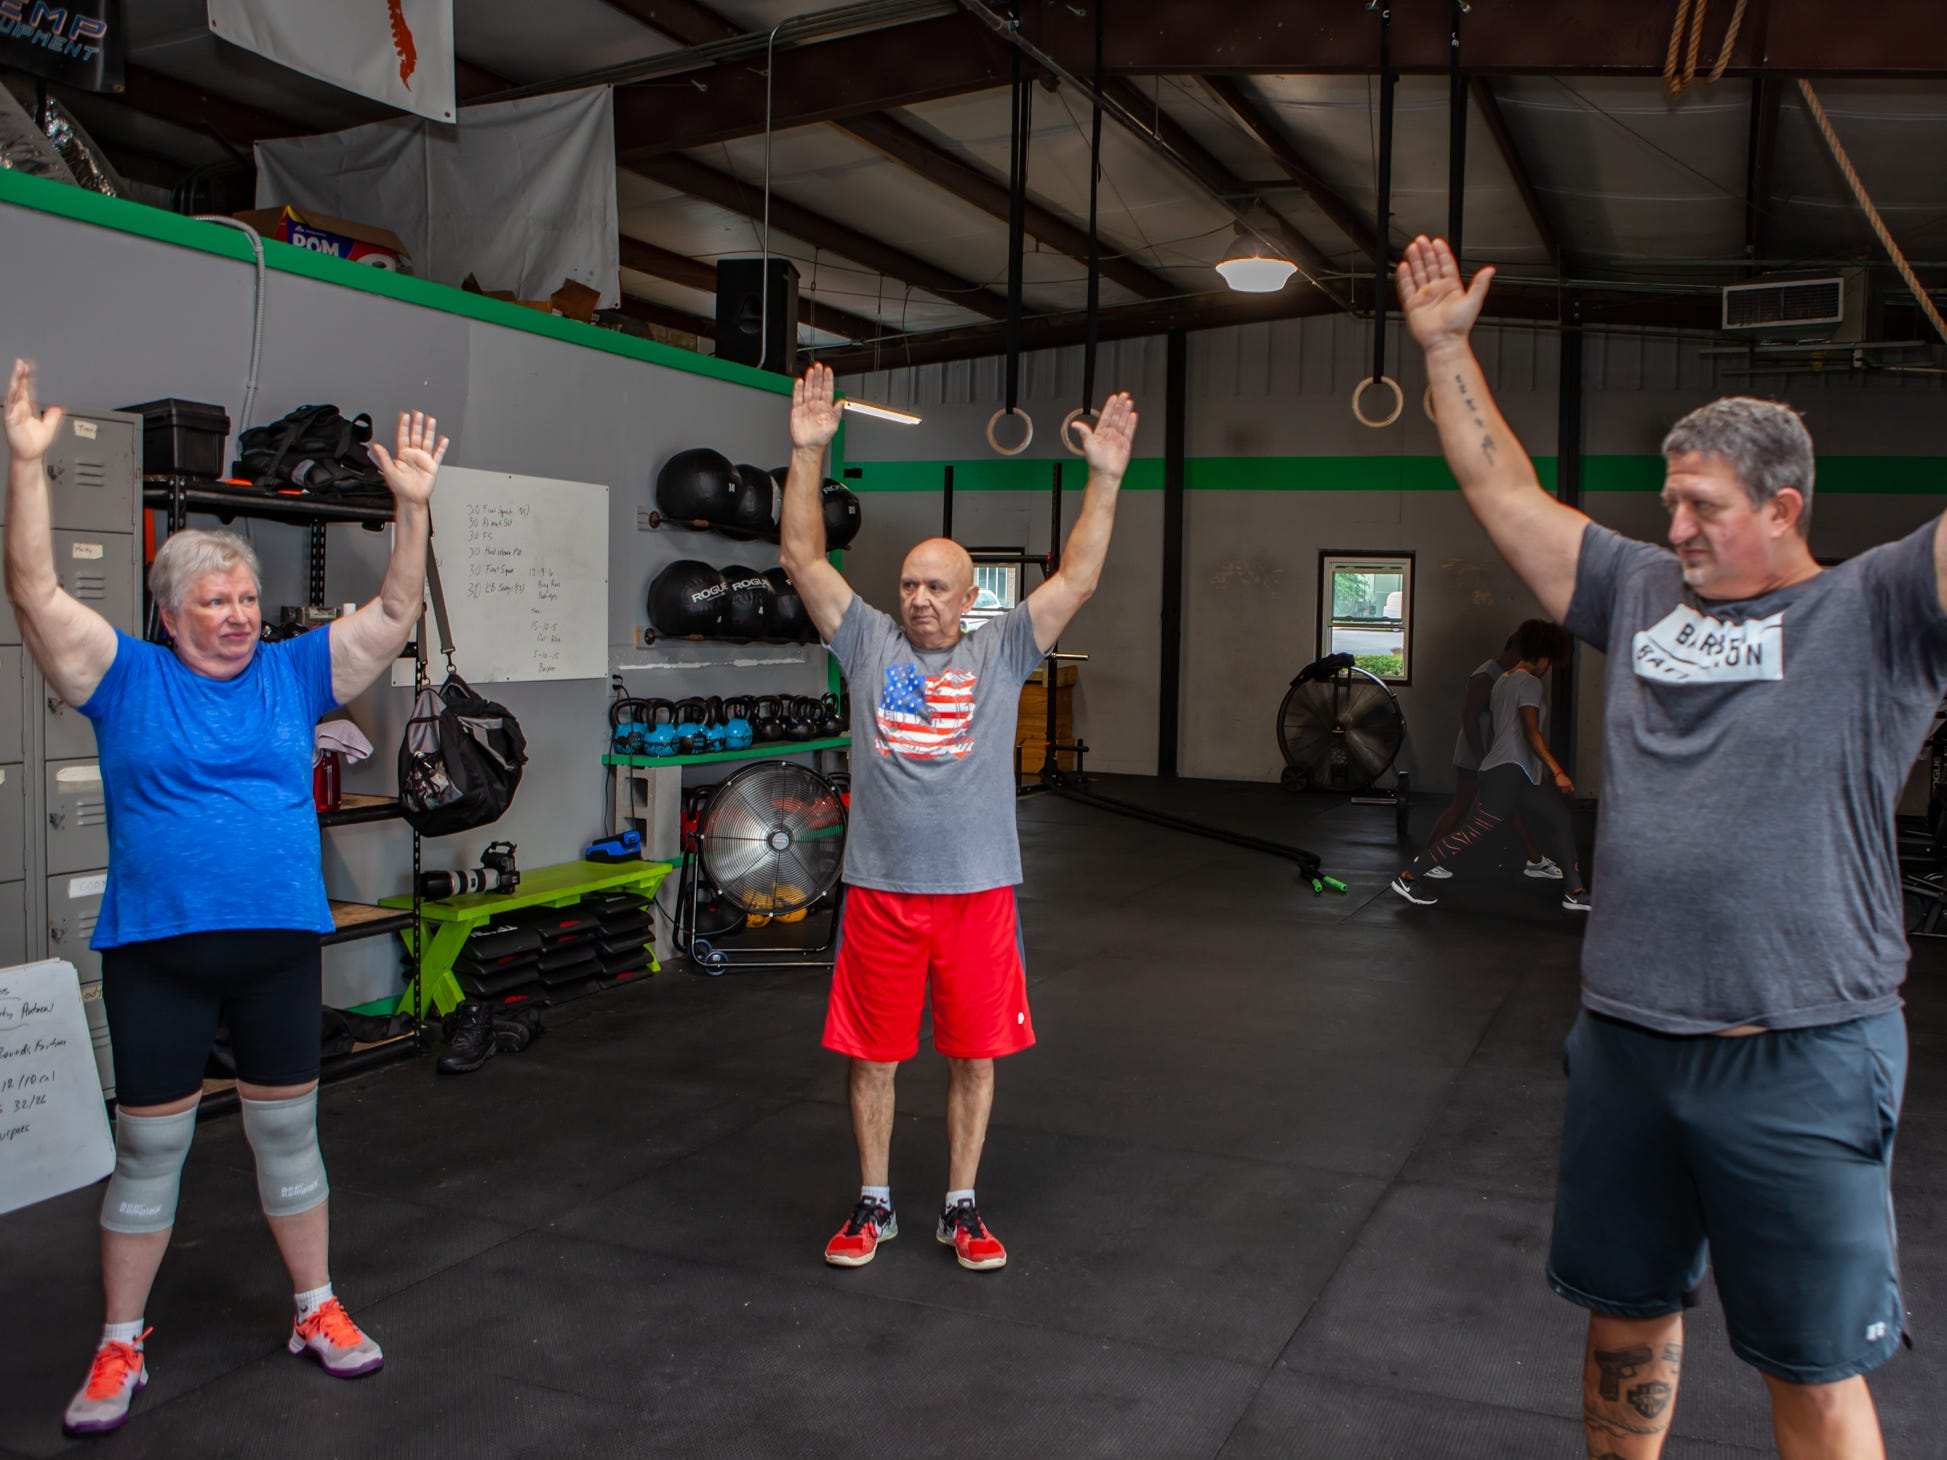 Lynda, Alton and Tim Miles, from left, stretch prior to a workout at CrossFit Barbell Batallion in downtown Murfreesboro. Tim Miles is a trainer and Lynda and Alton are his parents.